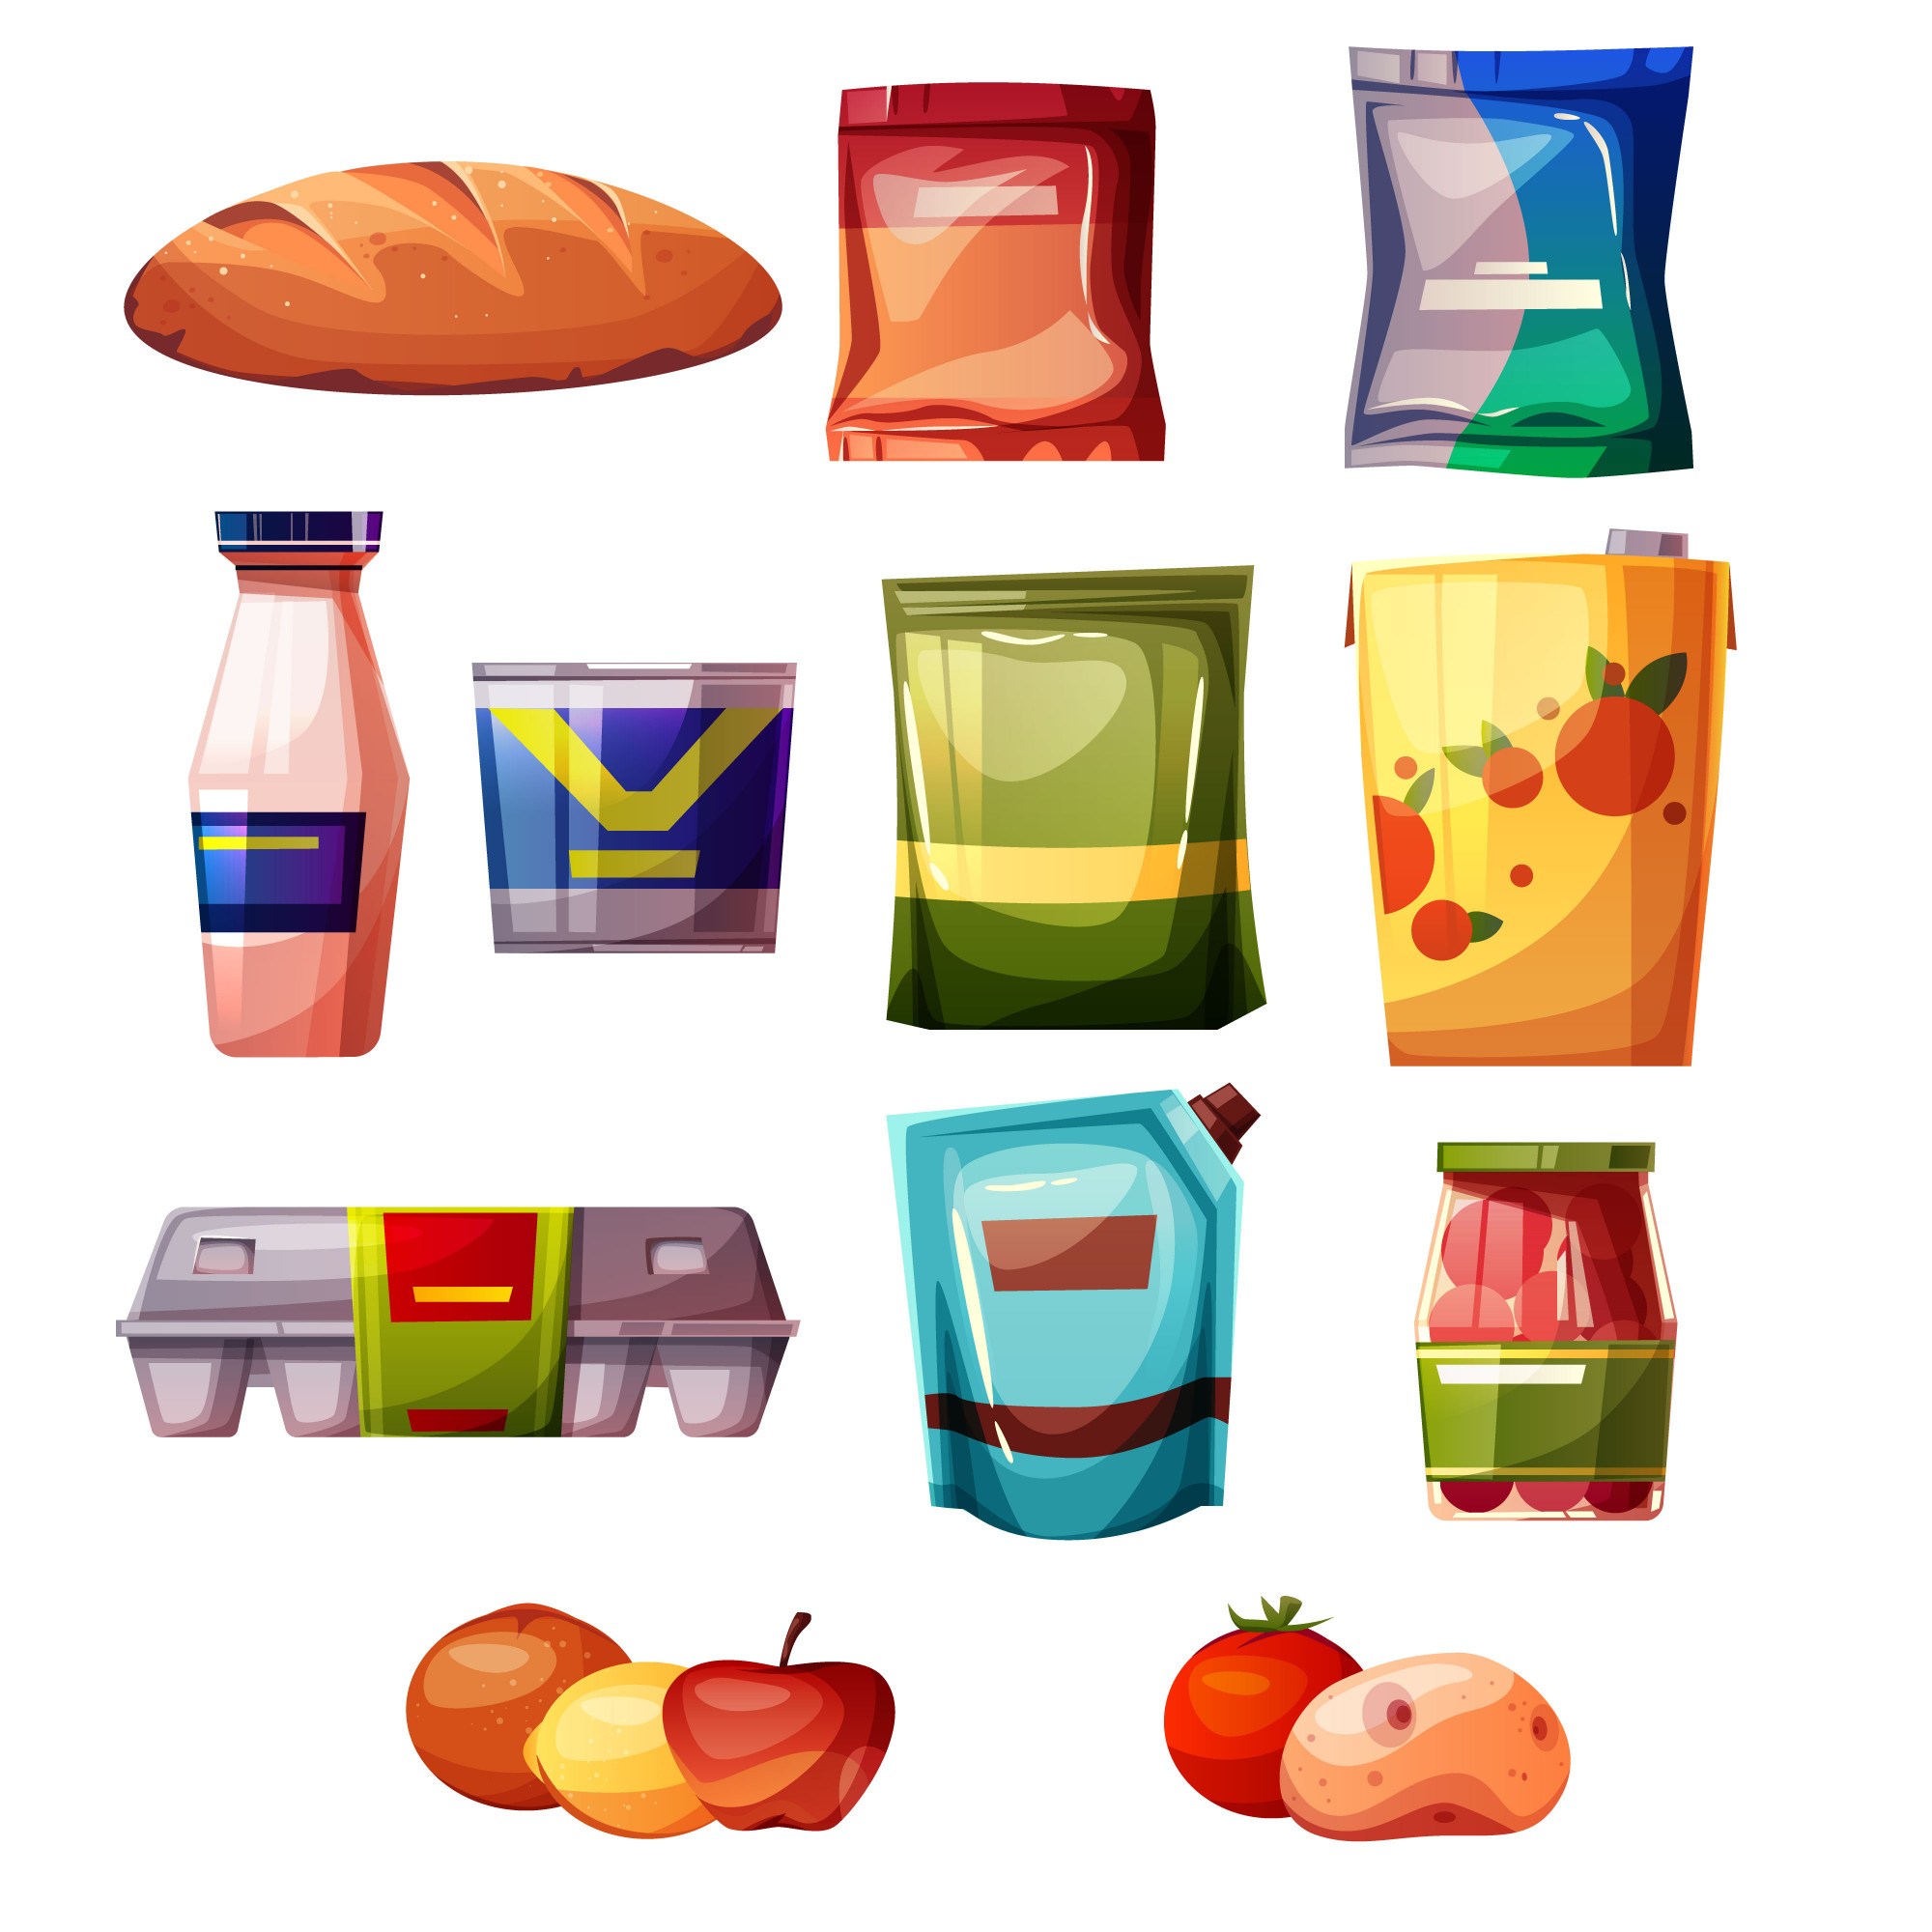 Grocery products from supermarket or store illustration.